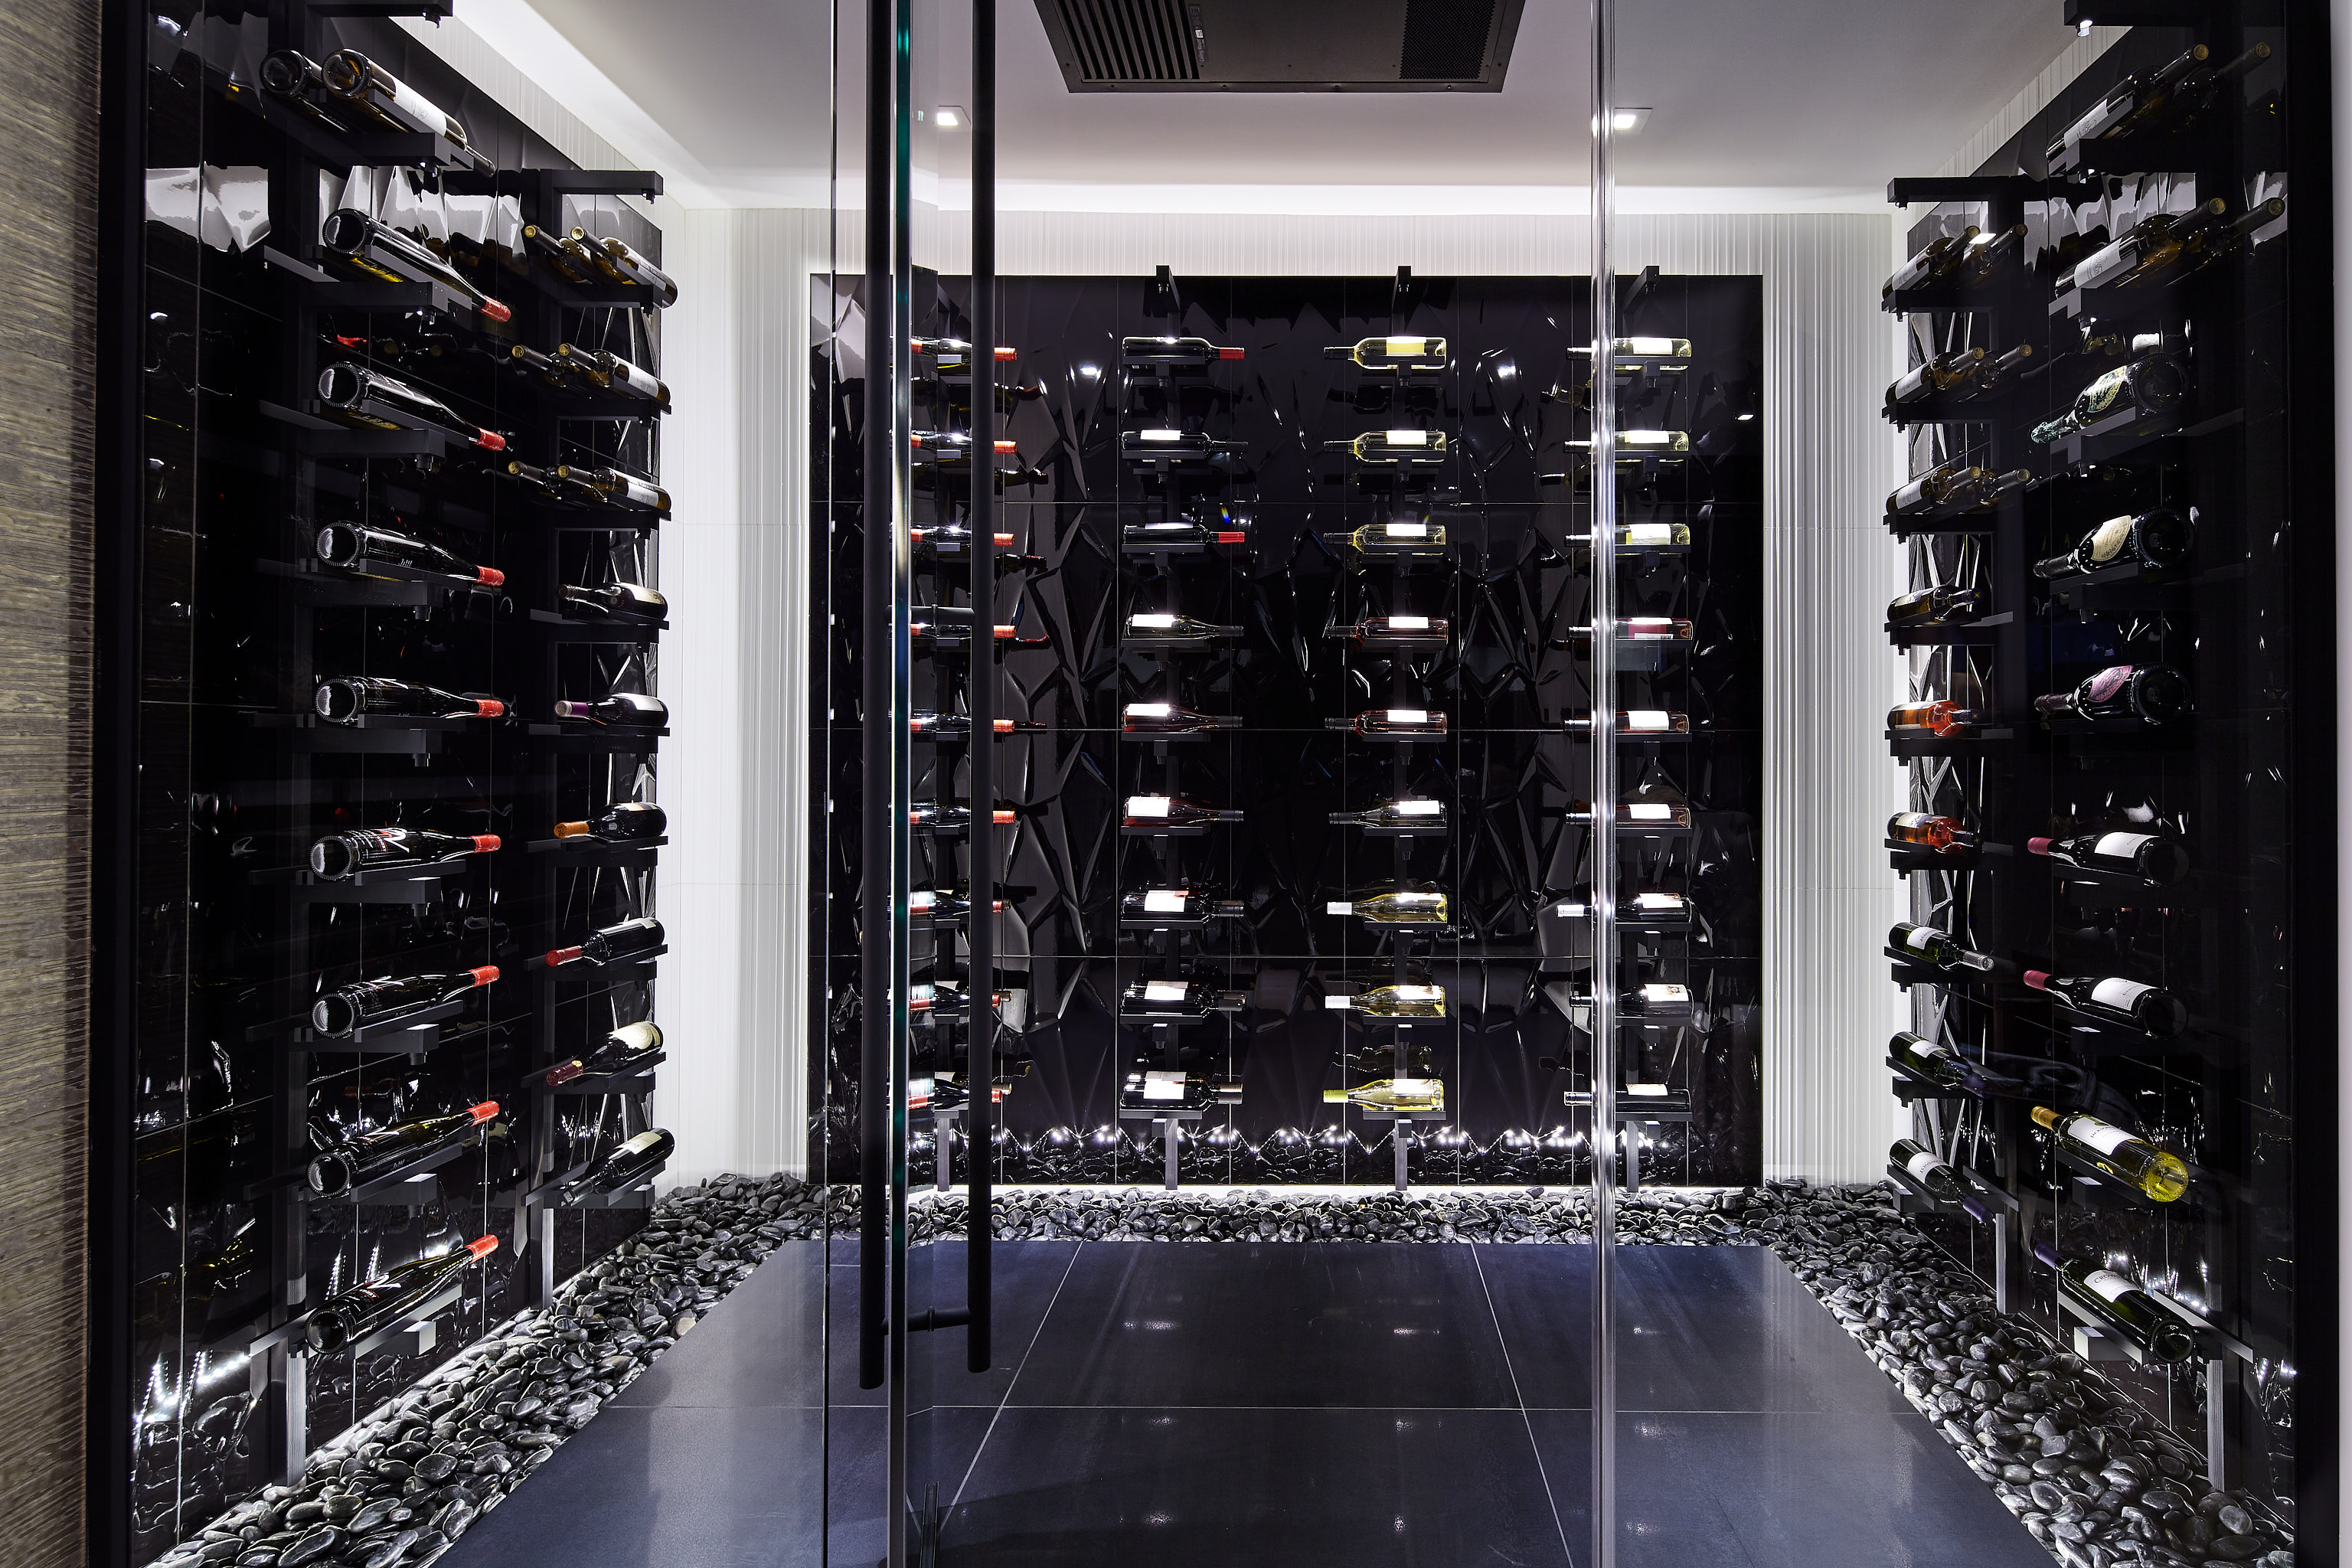 The Real Deal Basement Wine Cellar S Lighting Stuns In Vancouver